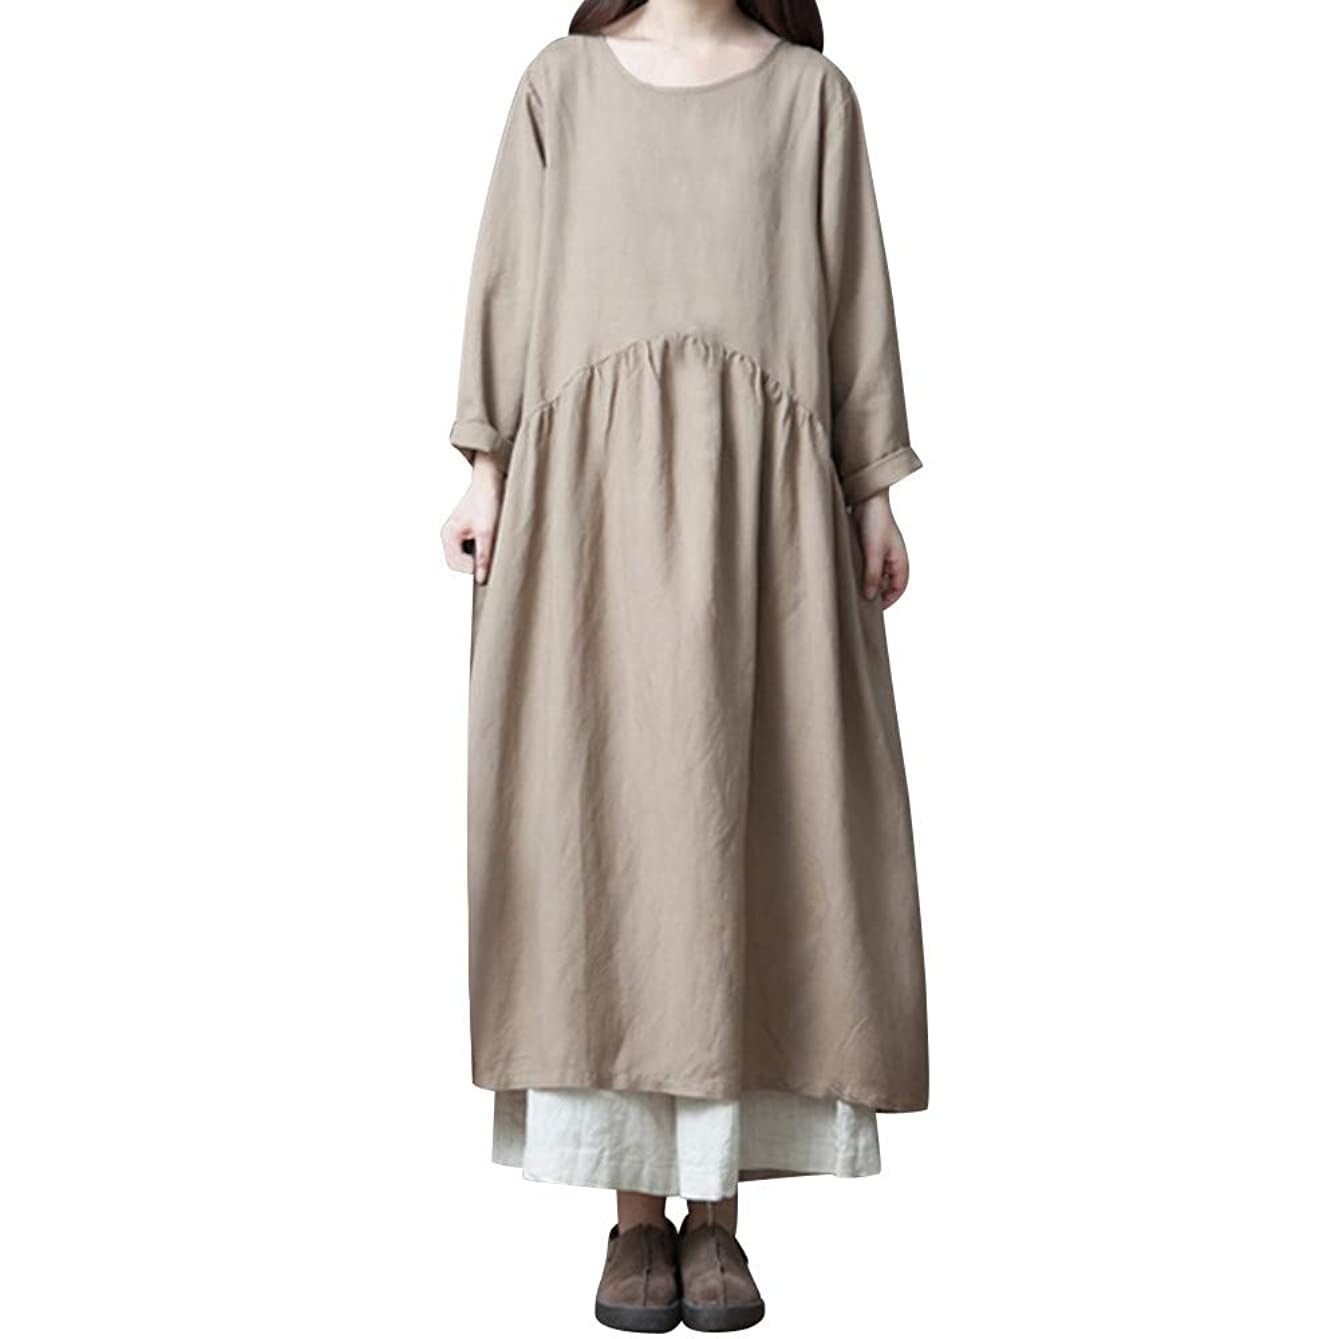 Sherostore ? Linen Cotton Casual Soft Loose Spring Summer Dress Plus Size Clothing Solid Long Maxi Dress oegloe191095